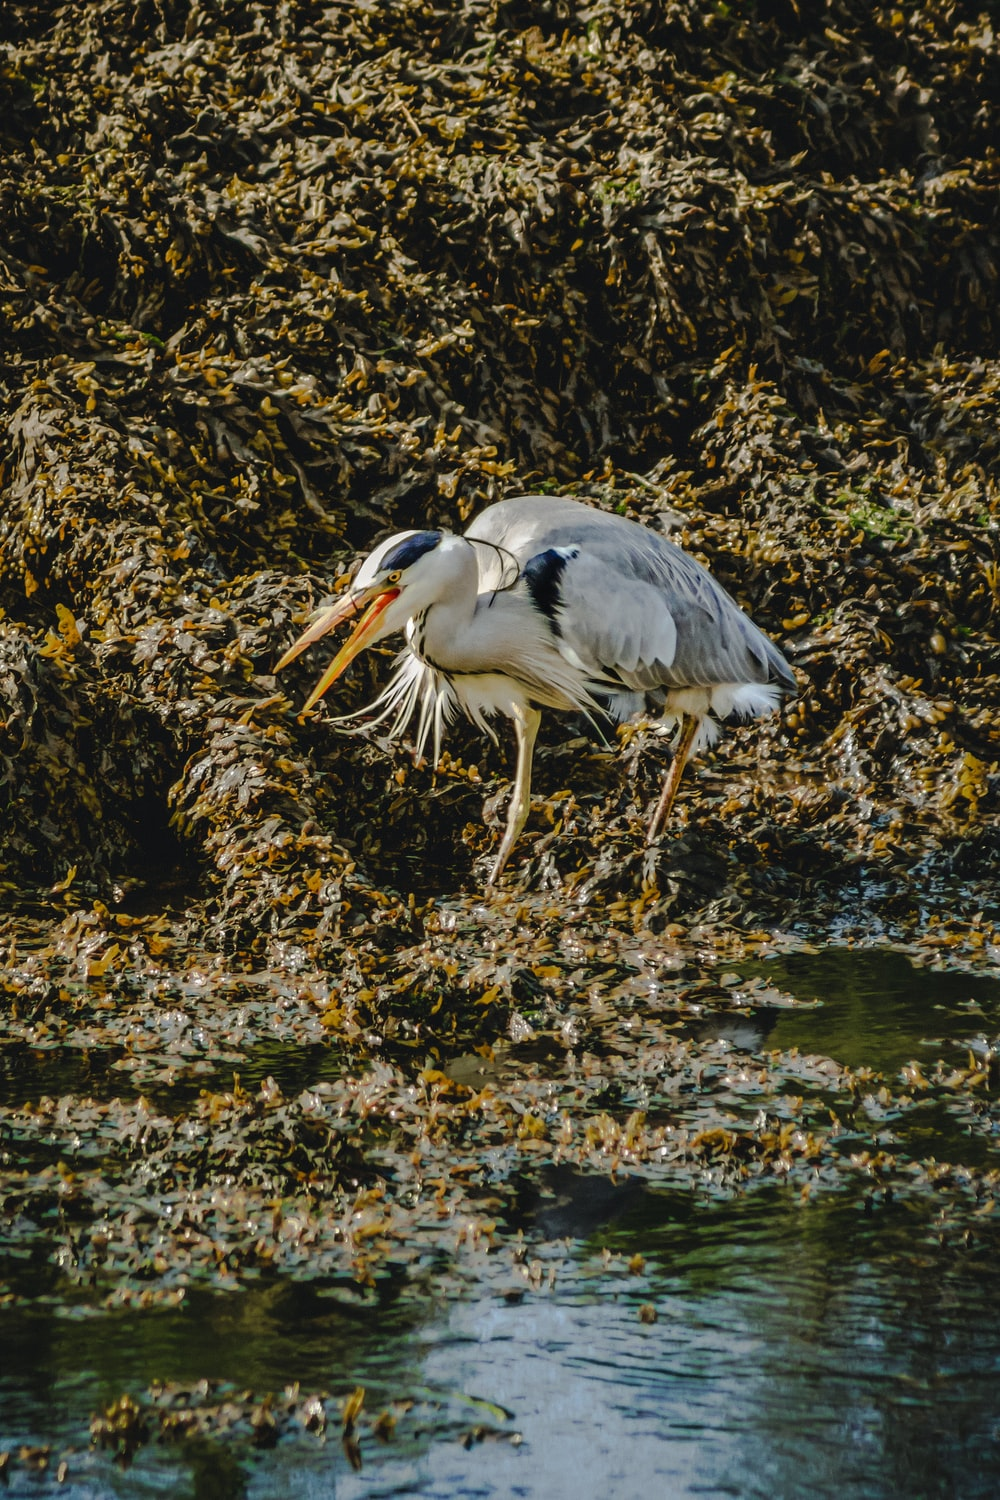 white stork on body of water during daytime